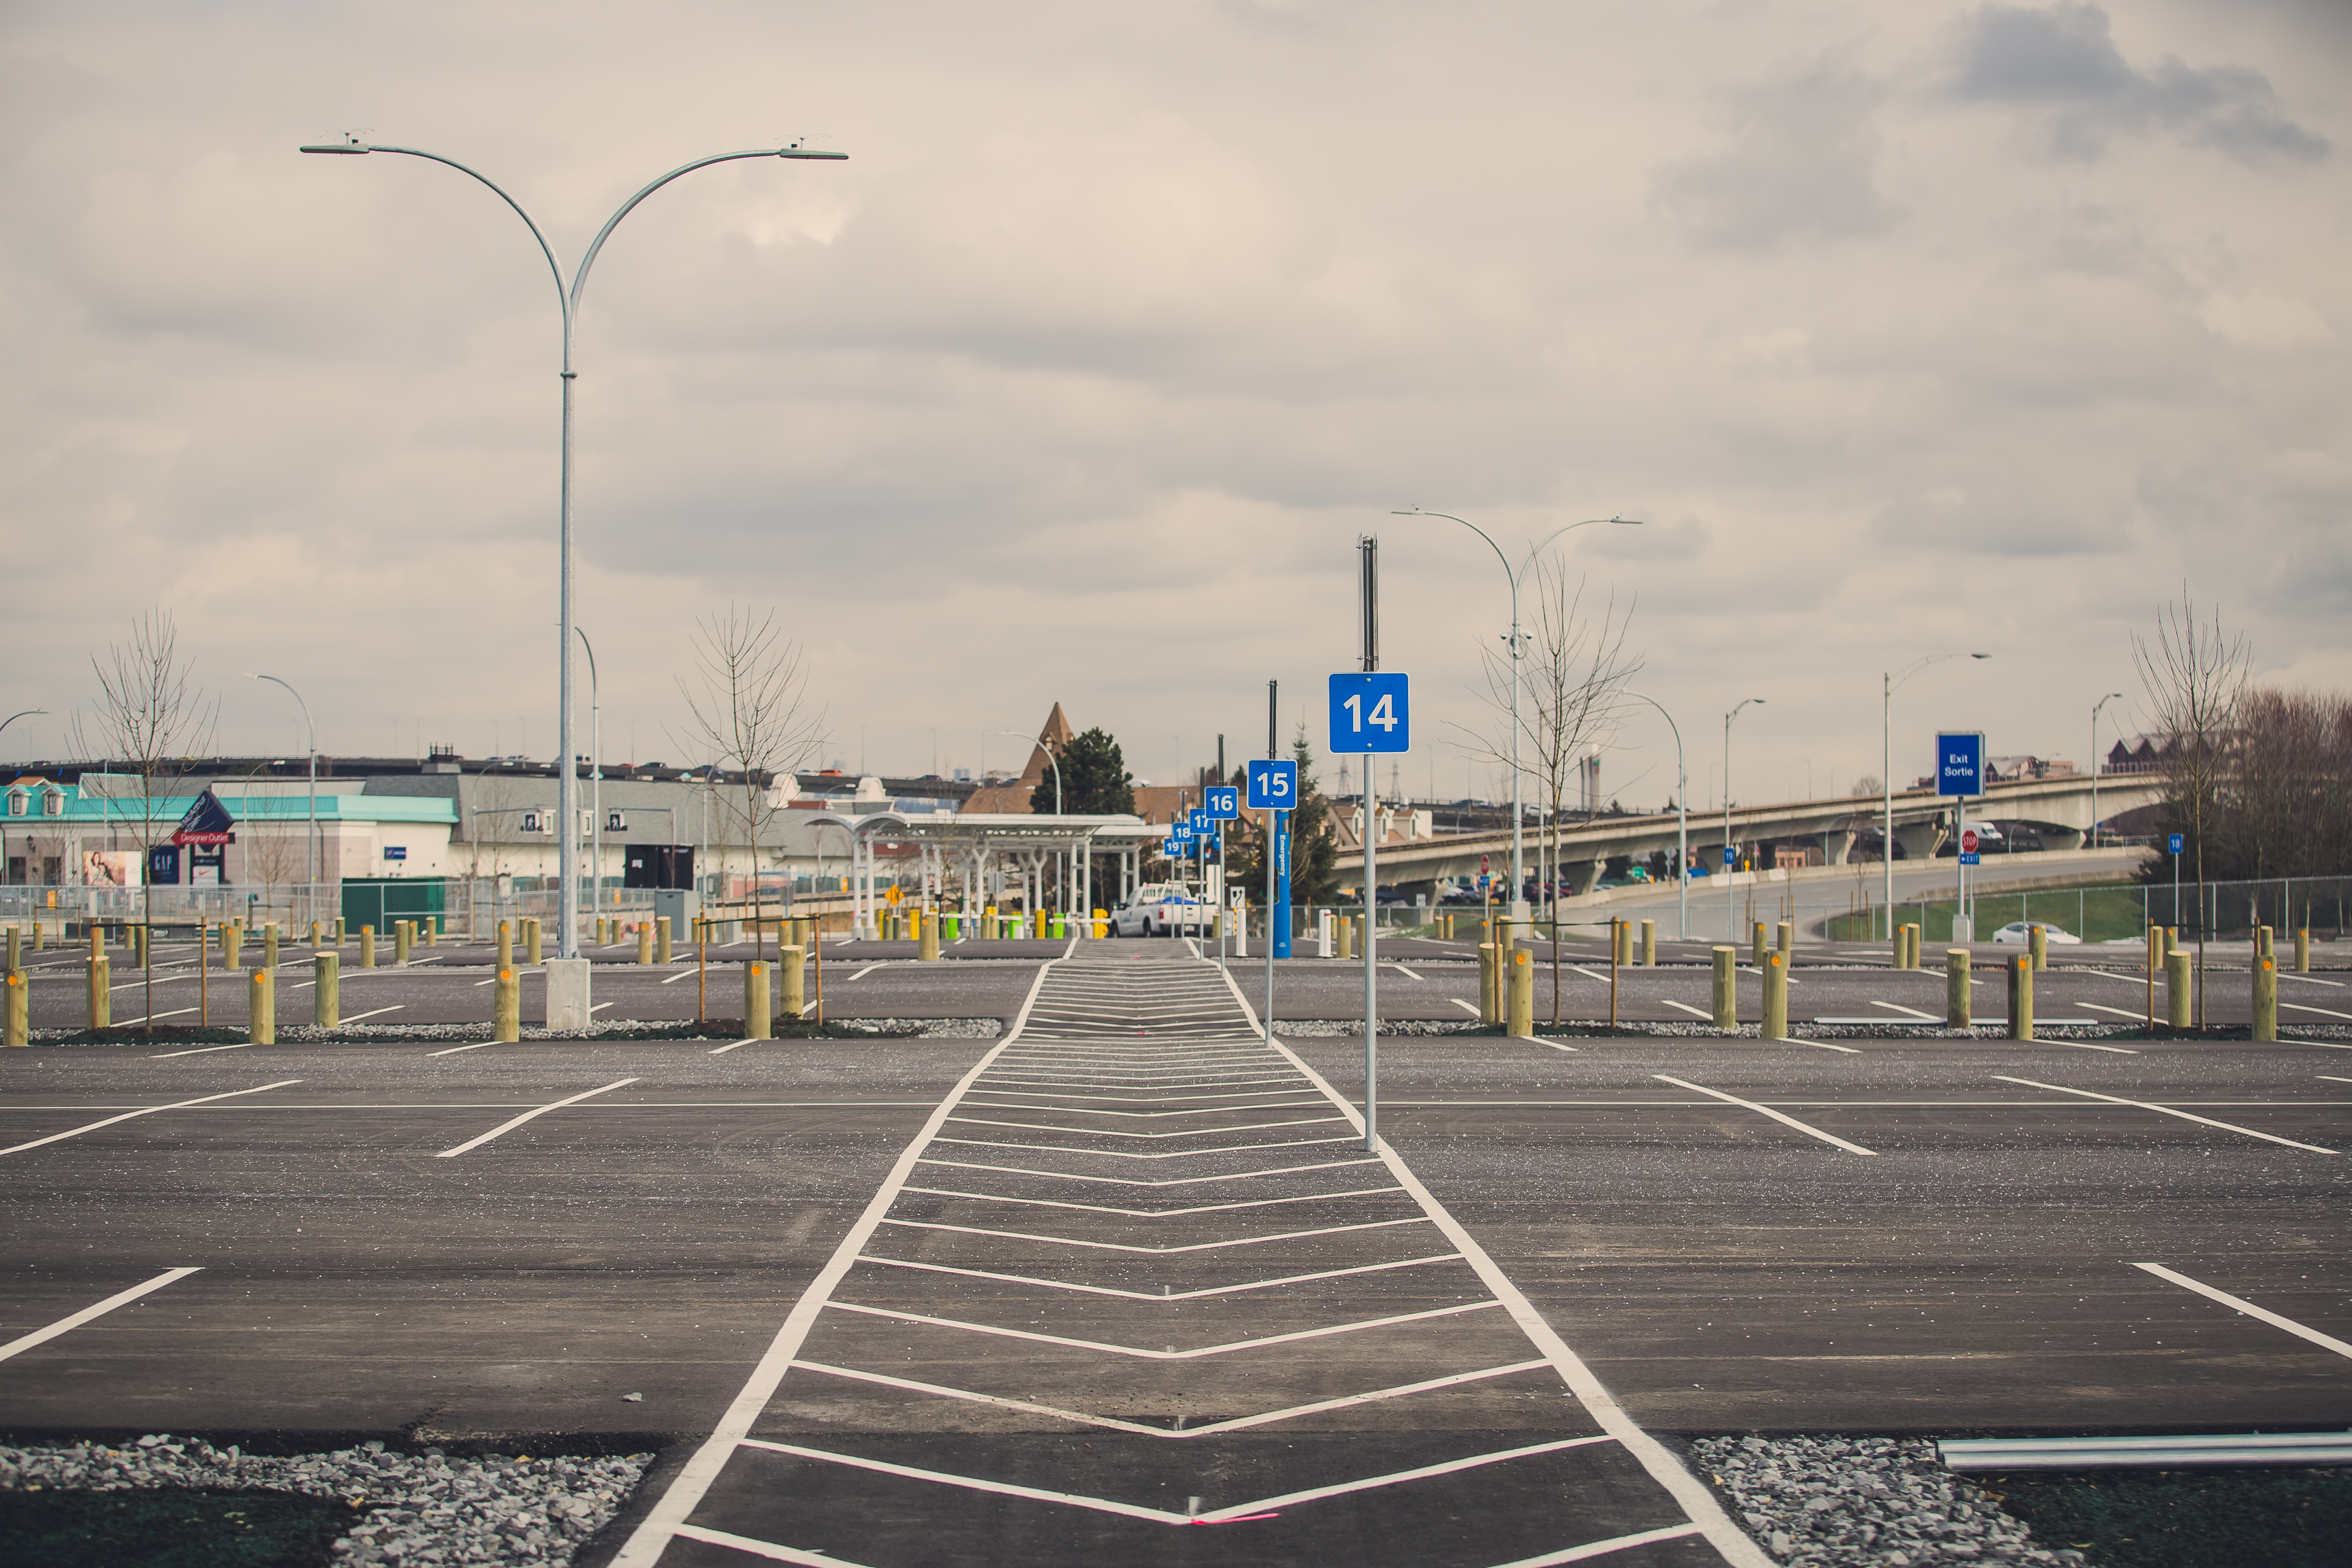 Park'N Fly Vancouver Airport Parking. Start and end your trip at Park'N Fly, Canada's leading airport parking company. With a network that spans coast-to-coast, we currently operate in Vancouver, Edmonton, Winnipeg, Toronto, Ottawa, Montréal, and Halifax.